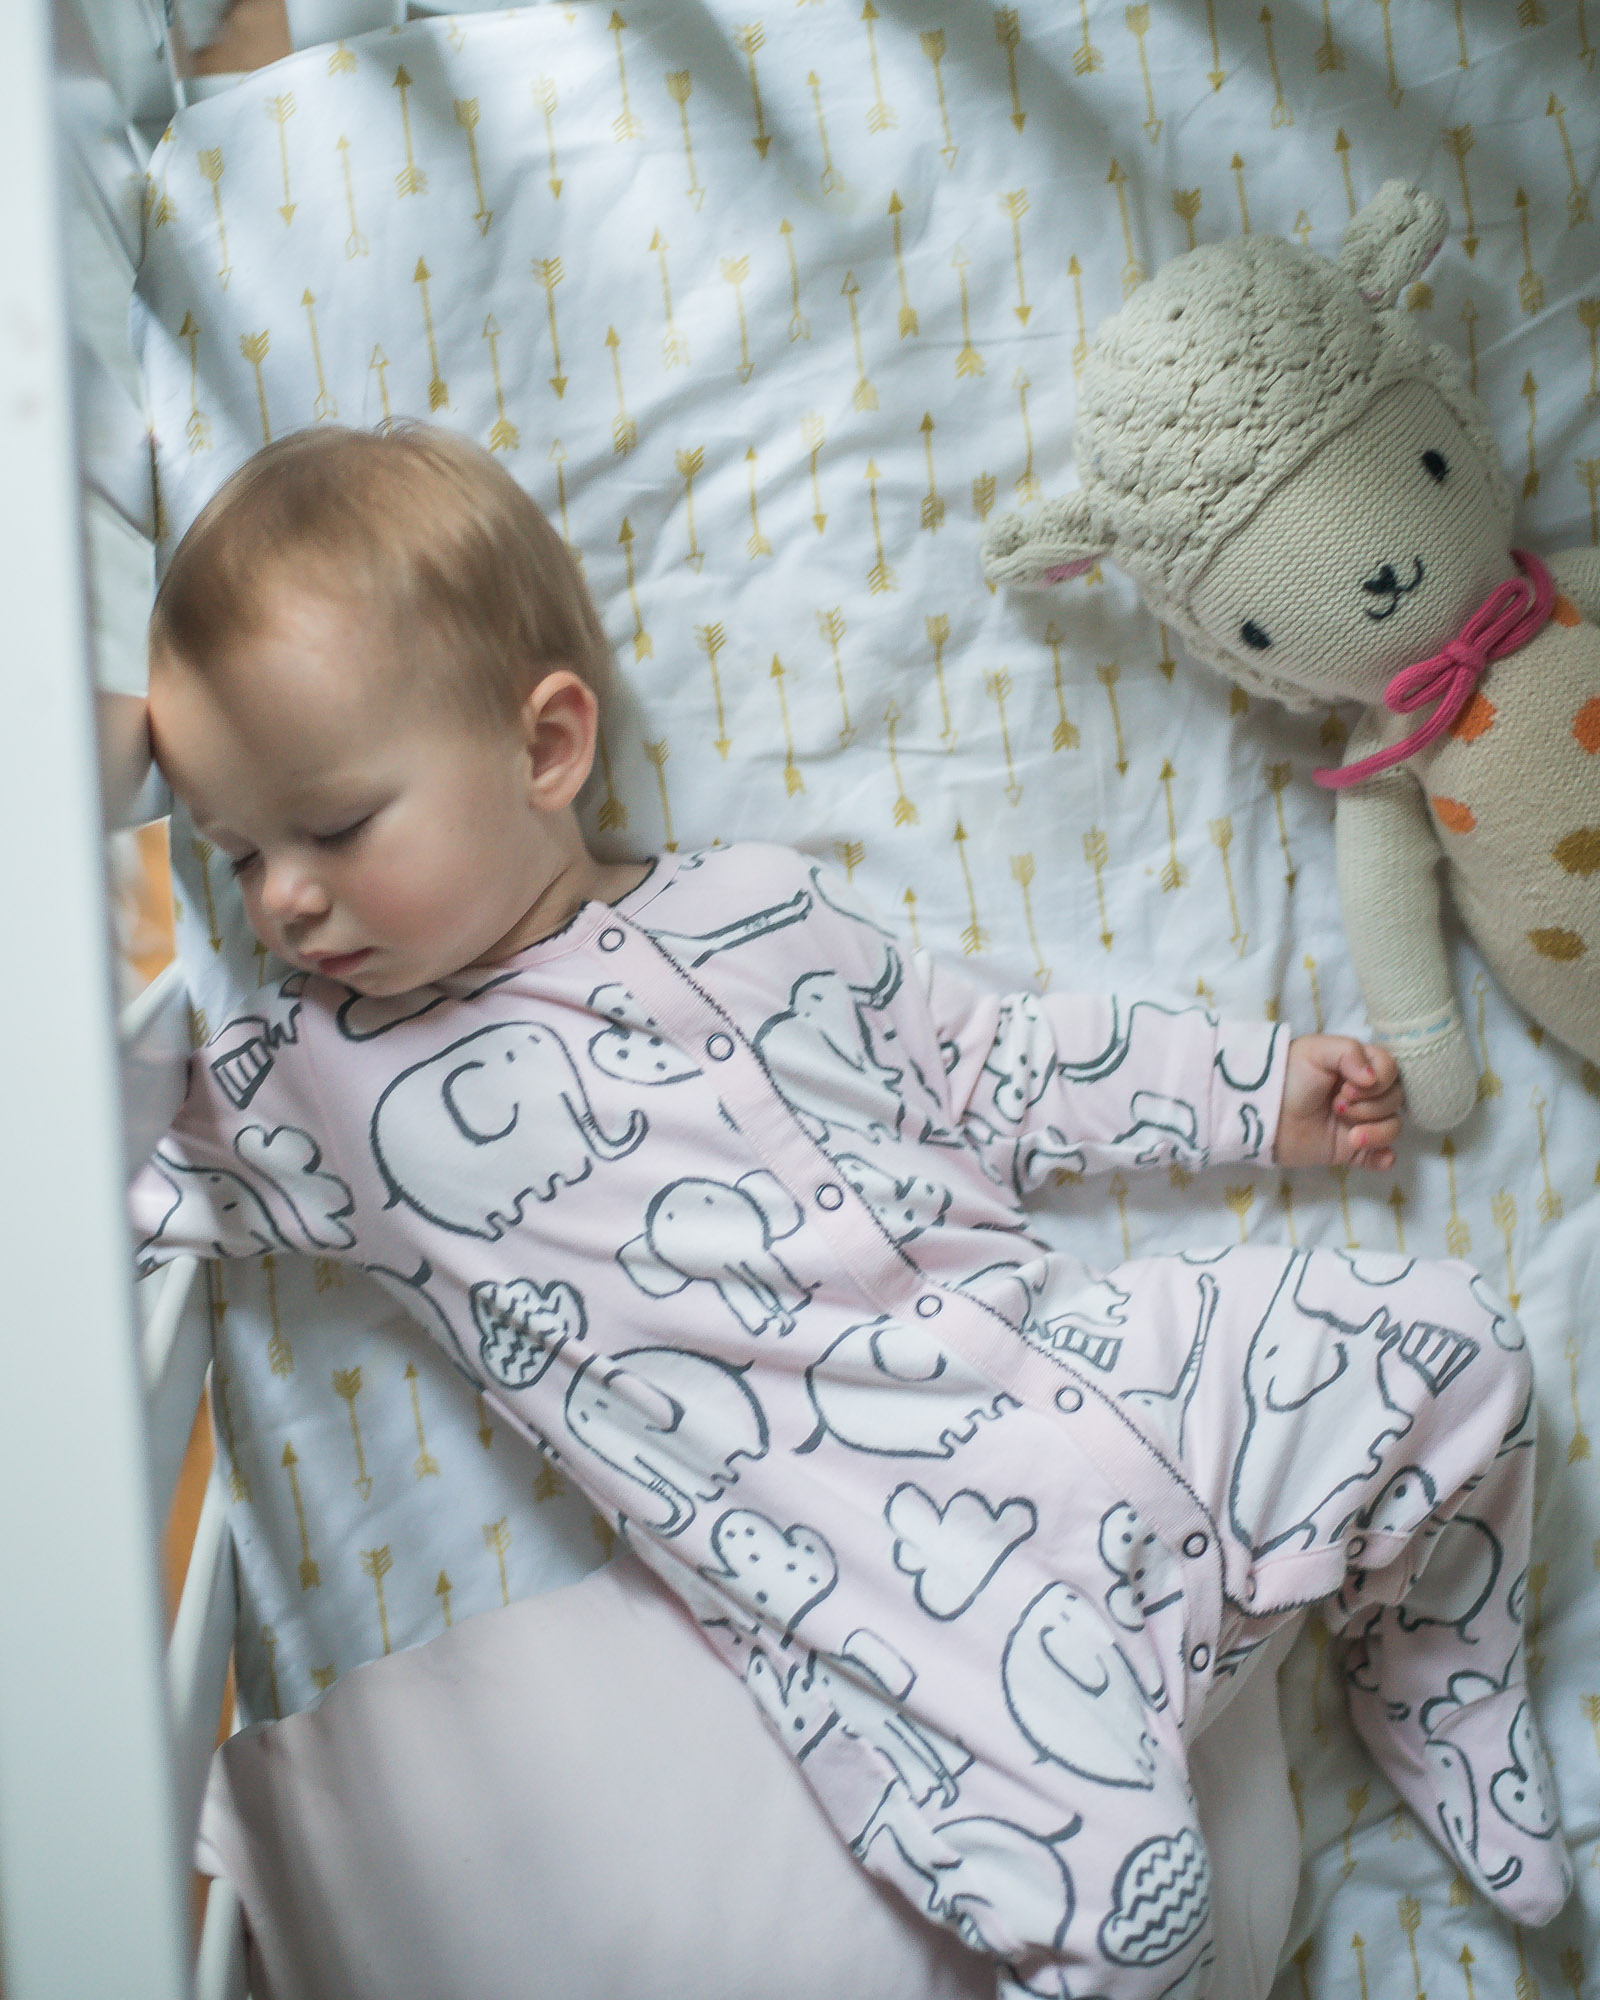 Sleep expert Lindsay Lewis shares tips for sleep training a baby.